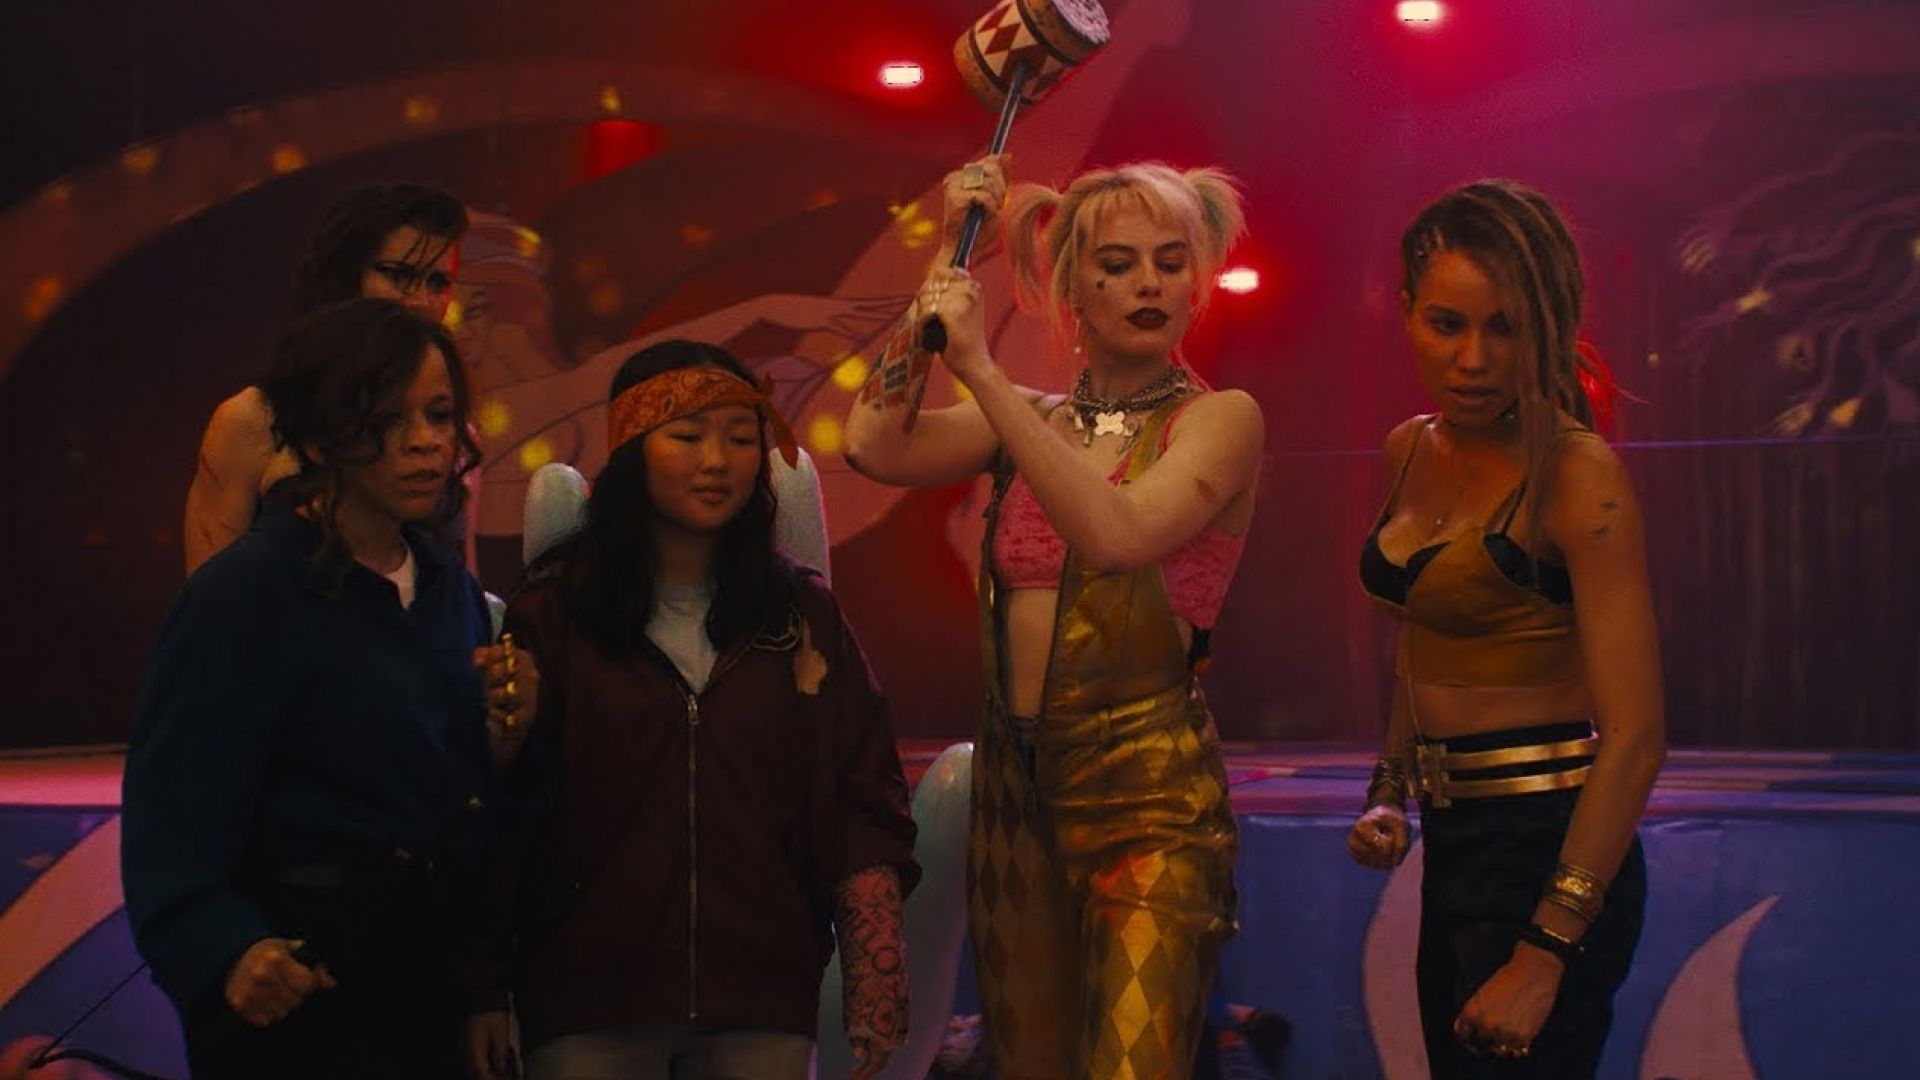 'Birds of Prey' | In theaters February 7, 2020